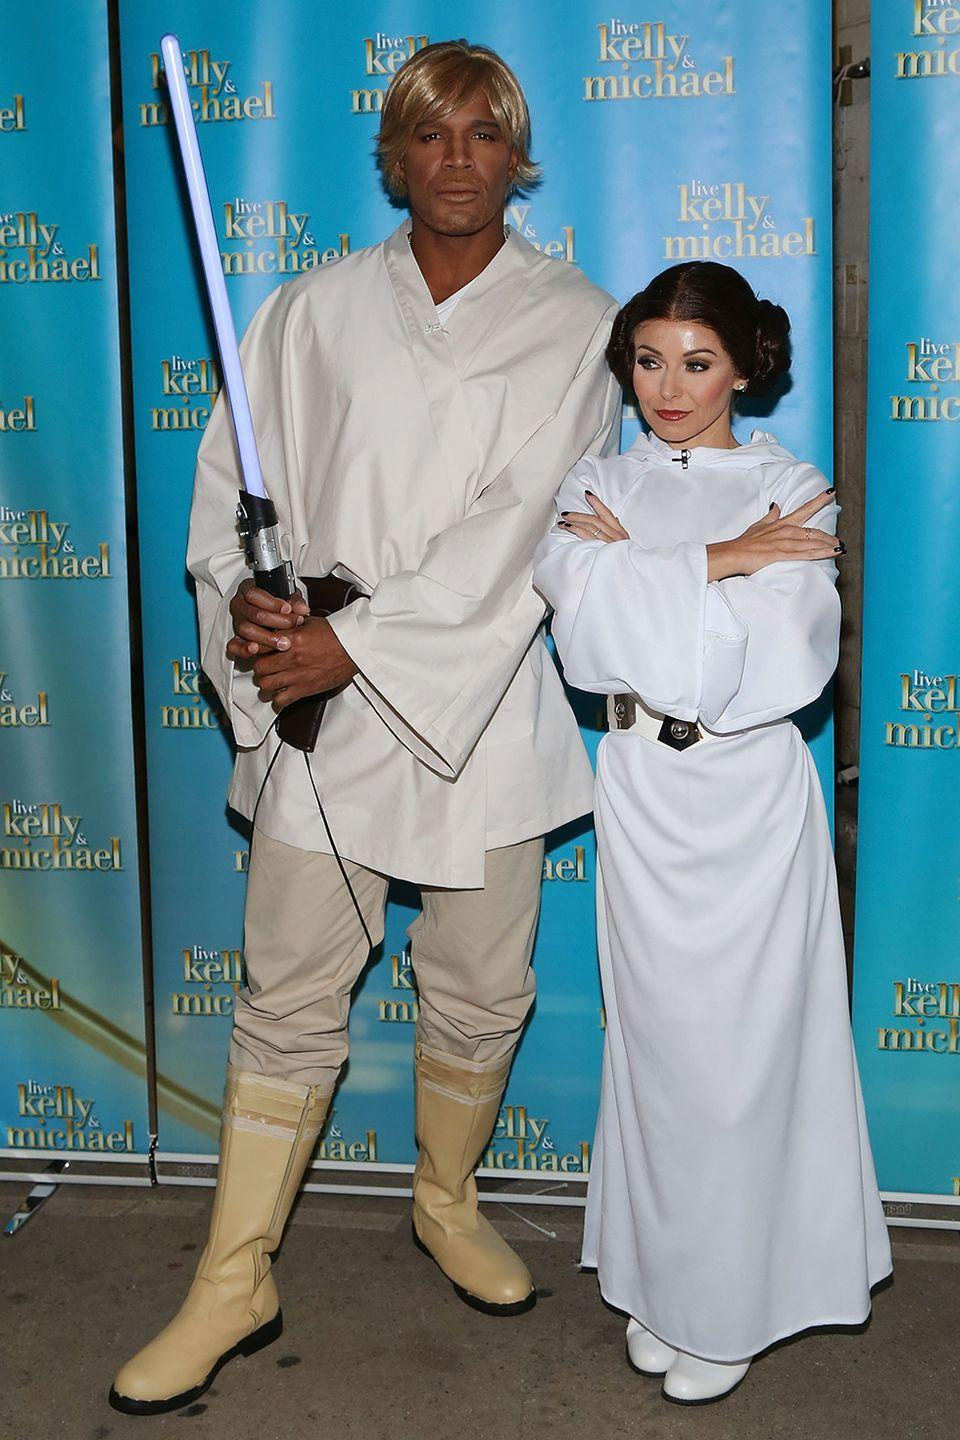 <p>Kelly and Michael were at it again in 2015, dressed up as Luke Skywalker and Princess Leia. </p>